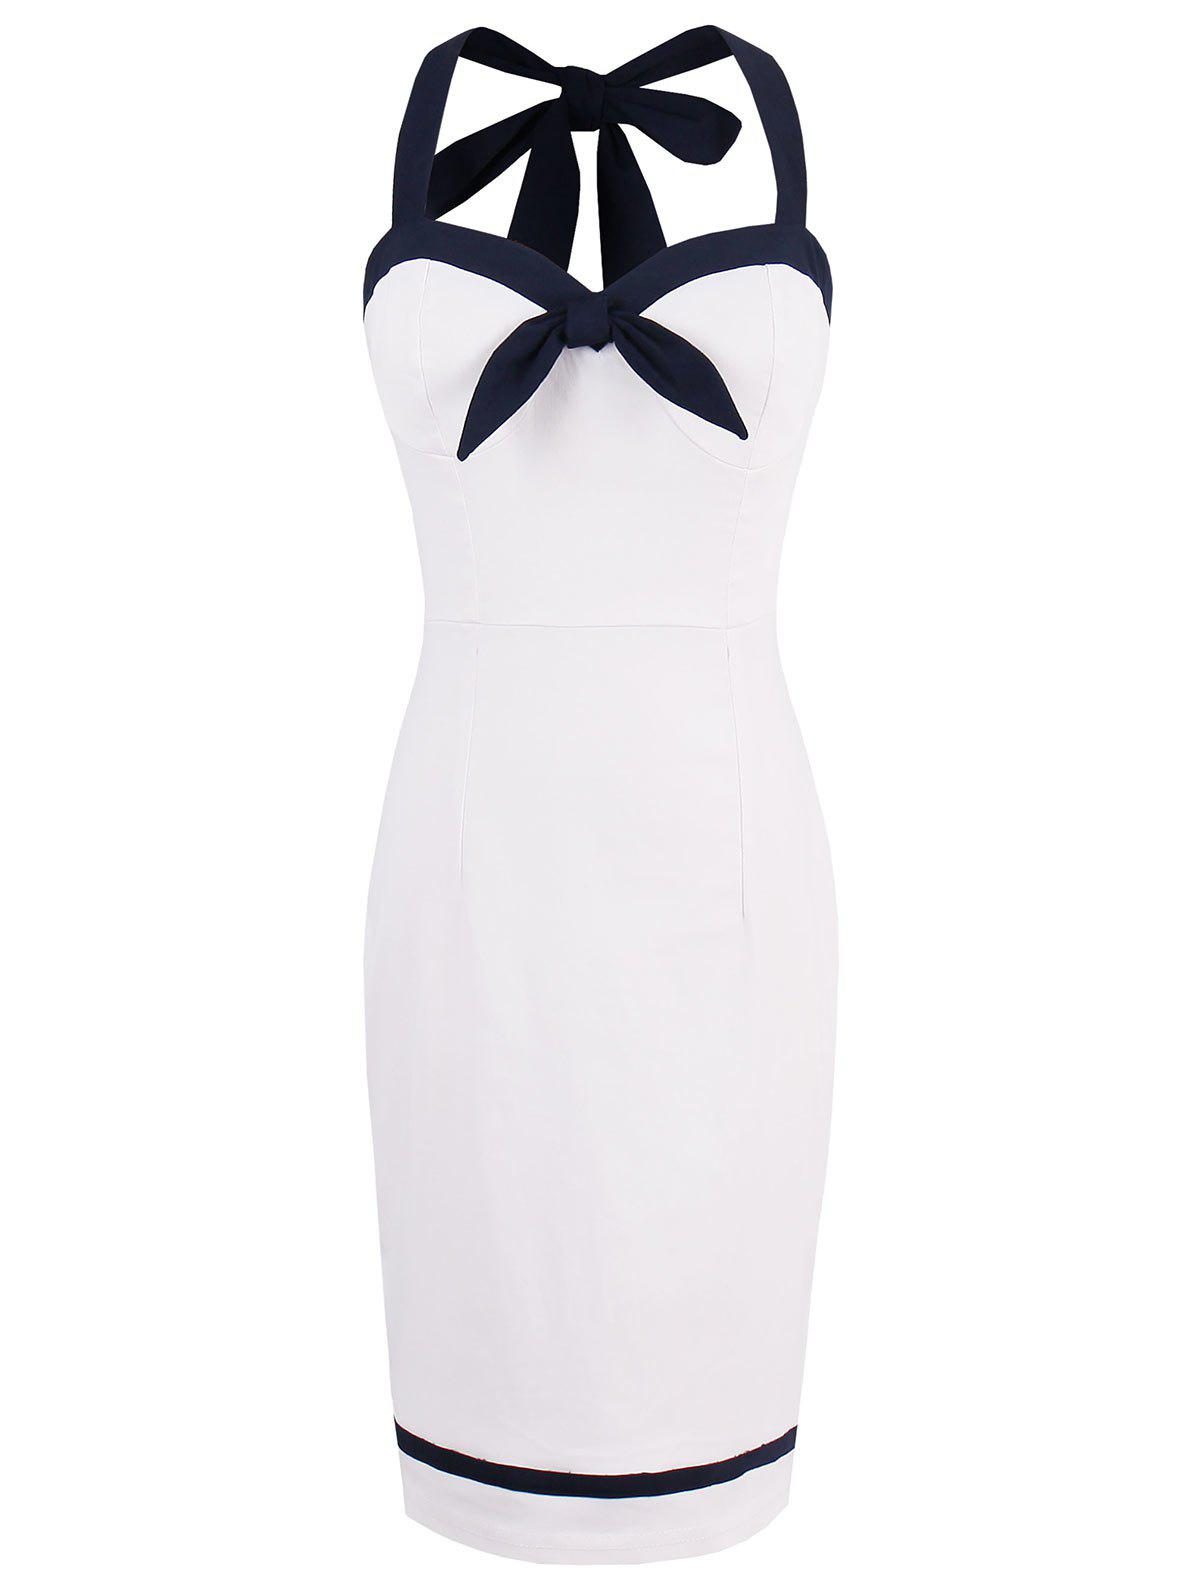 Fashion Mini Halter Sleeveless Sheath Dress